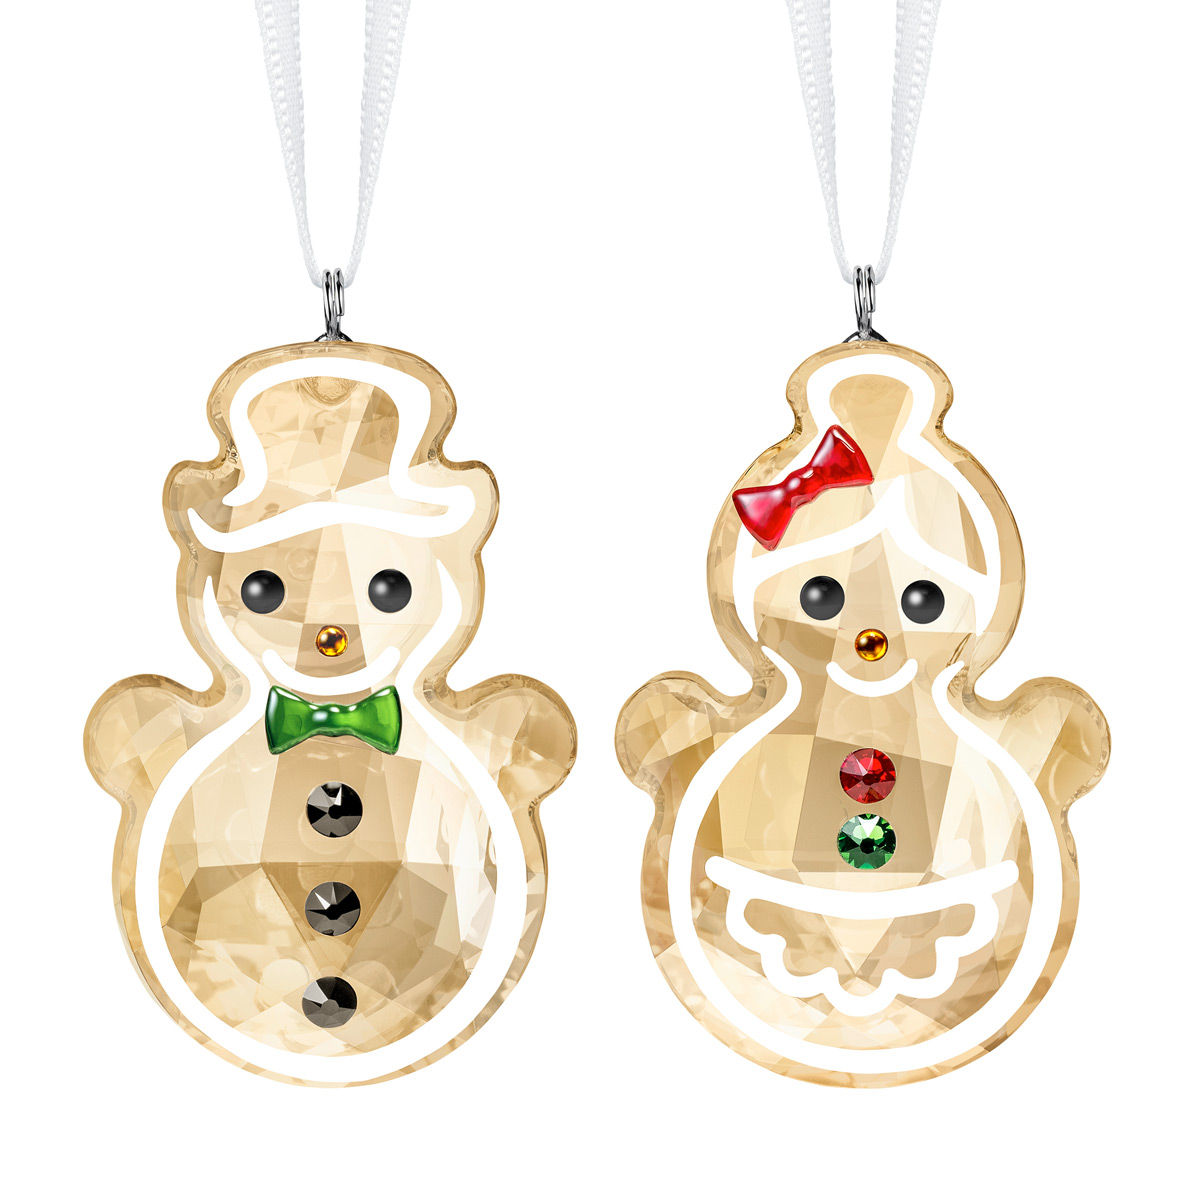 Swarovski Gingerbread Snowman Couple Ornament